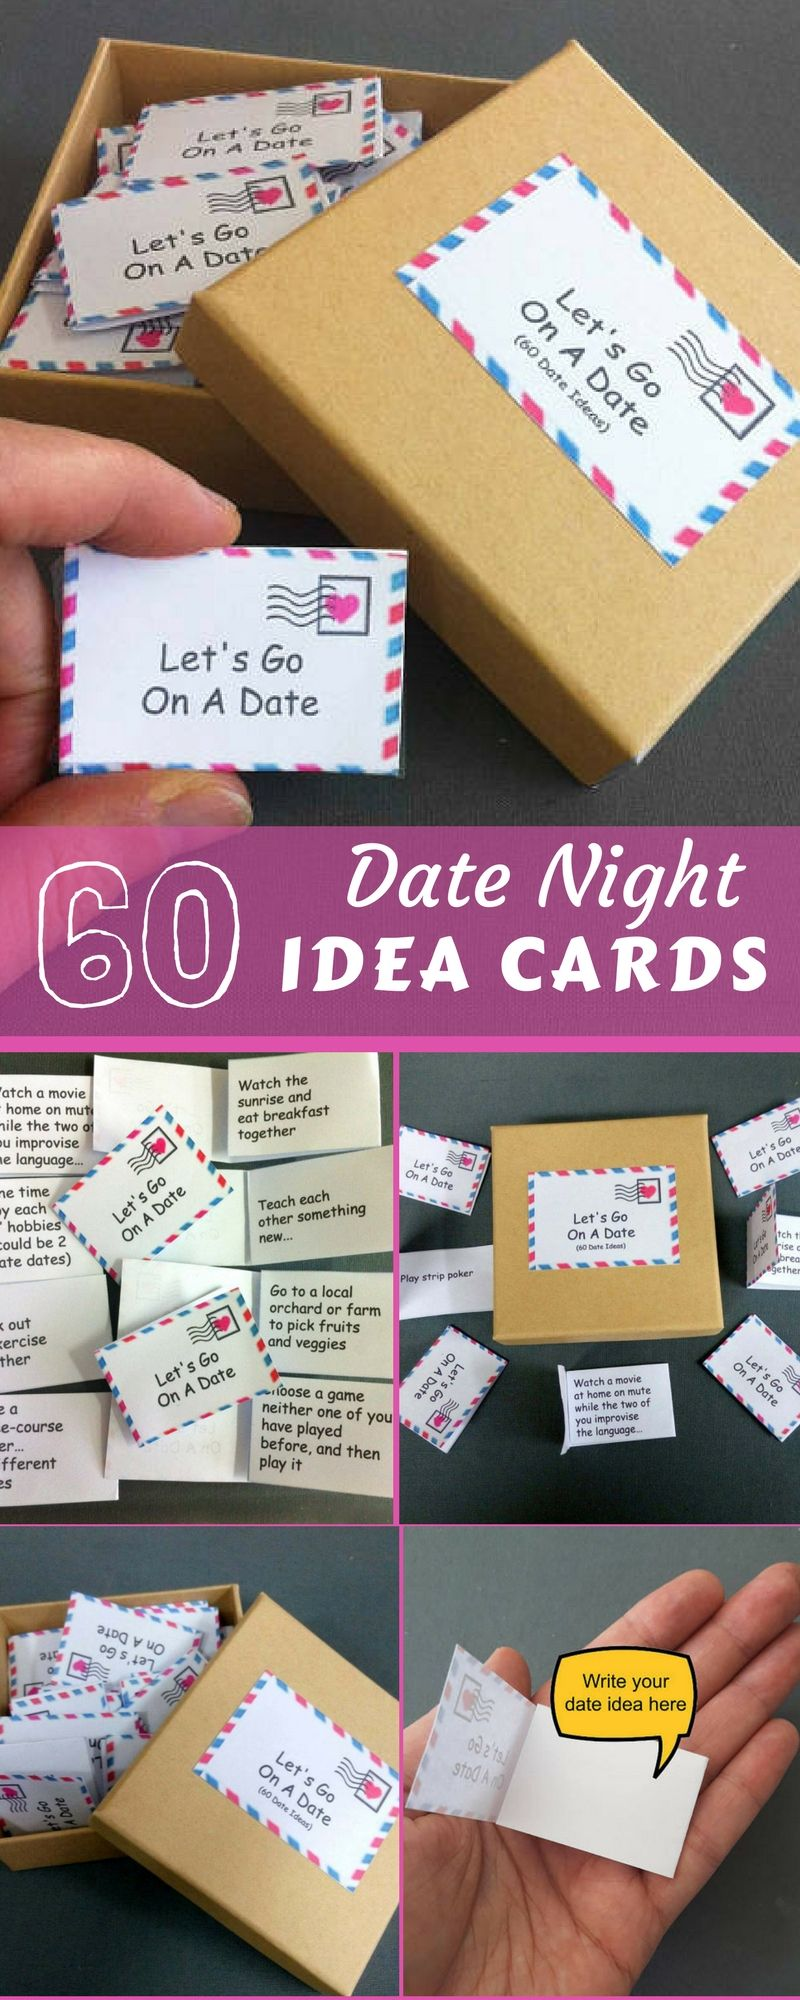 Date Night Box 60 Ideas Romantic Gift For Wife Husband Girlfriend BoyfriendAnniversary GiftFirst Anniversary Ad